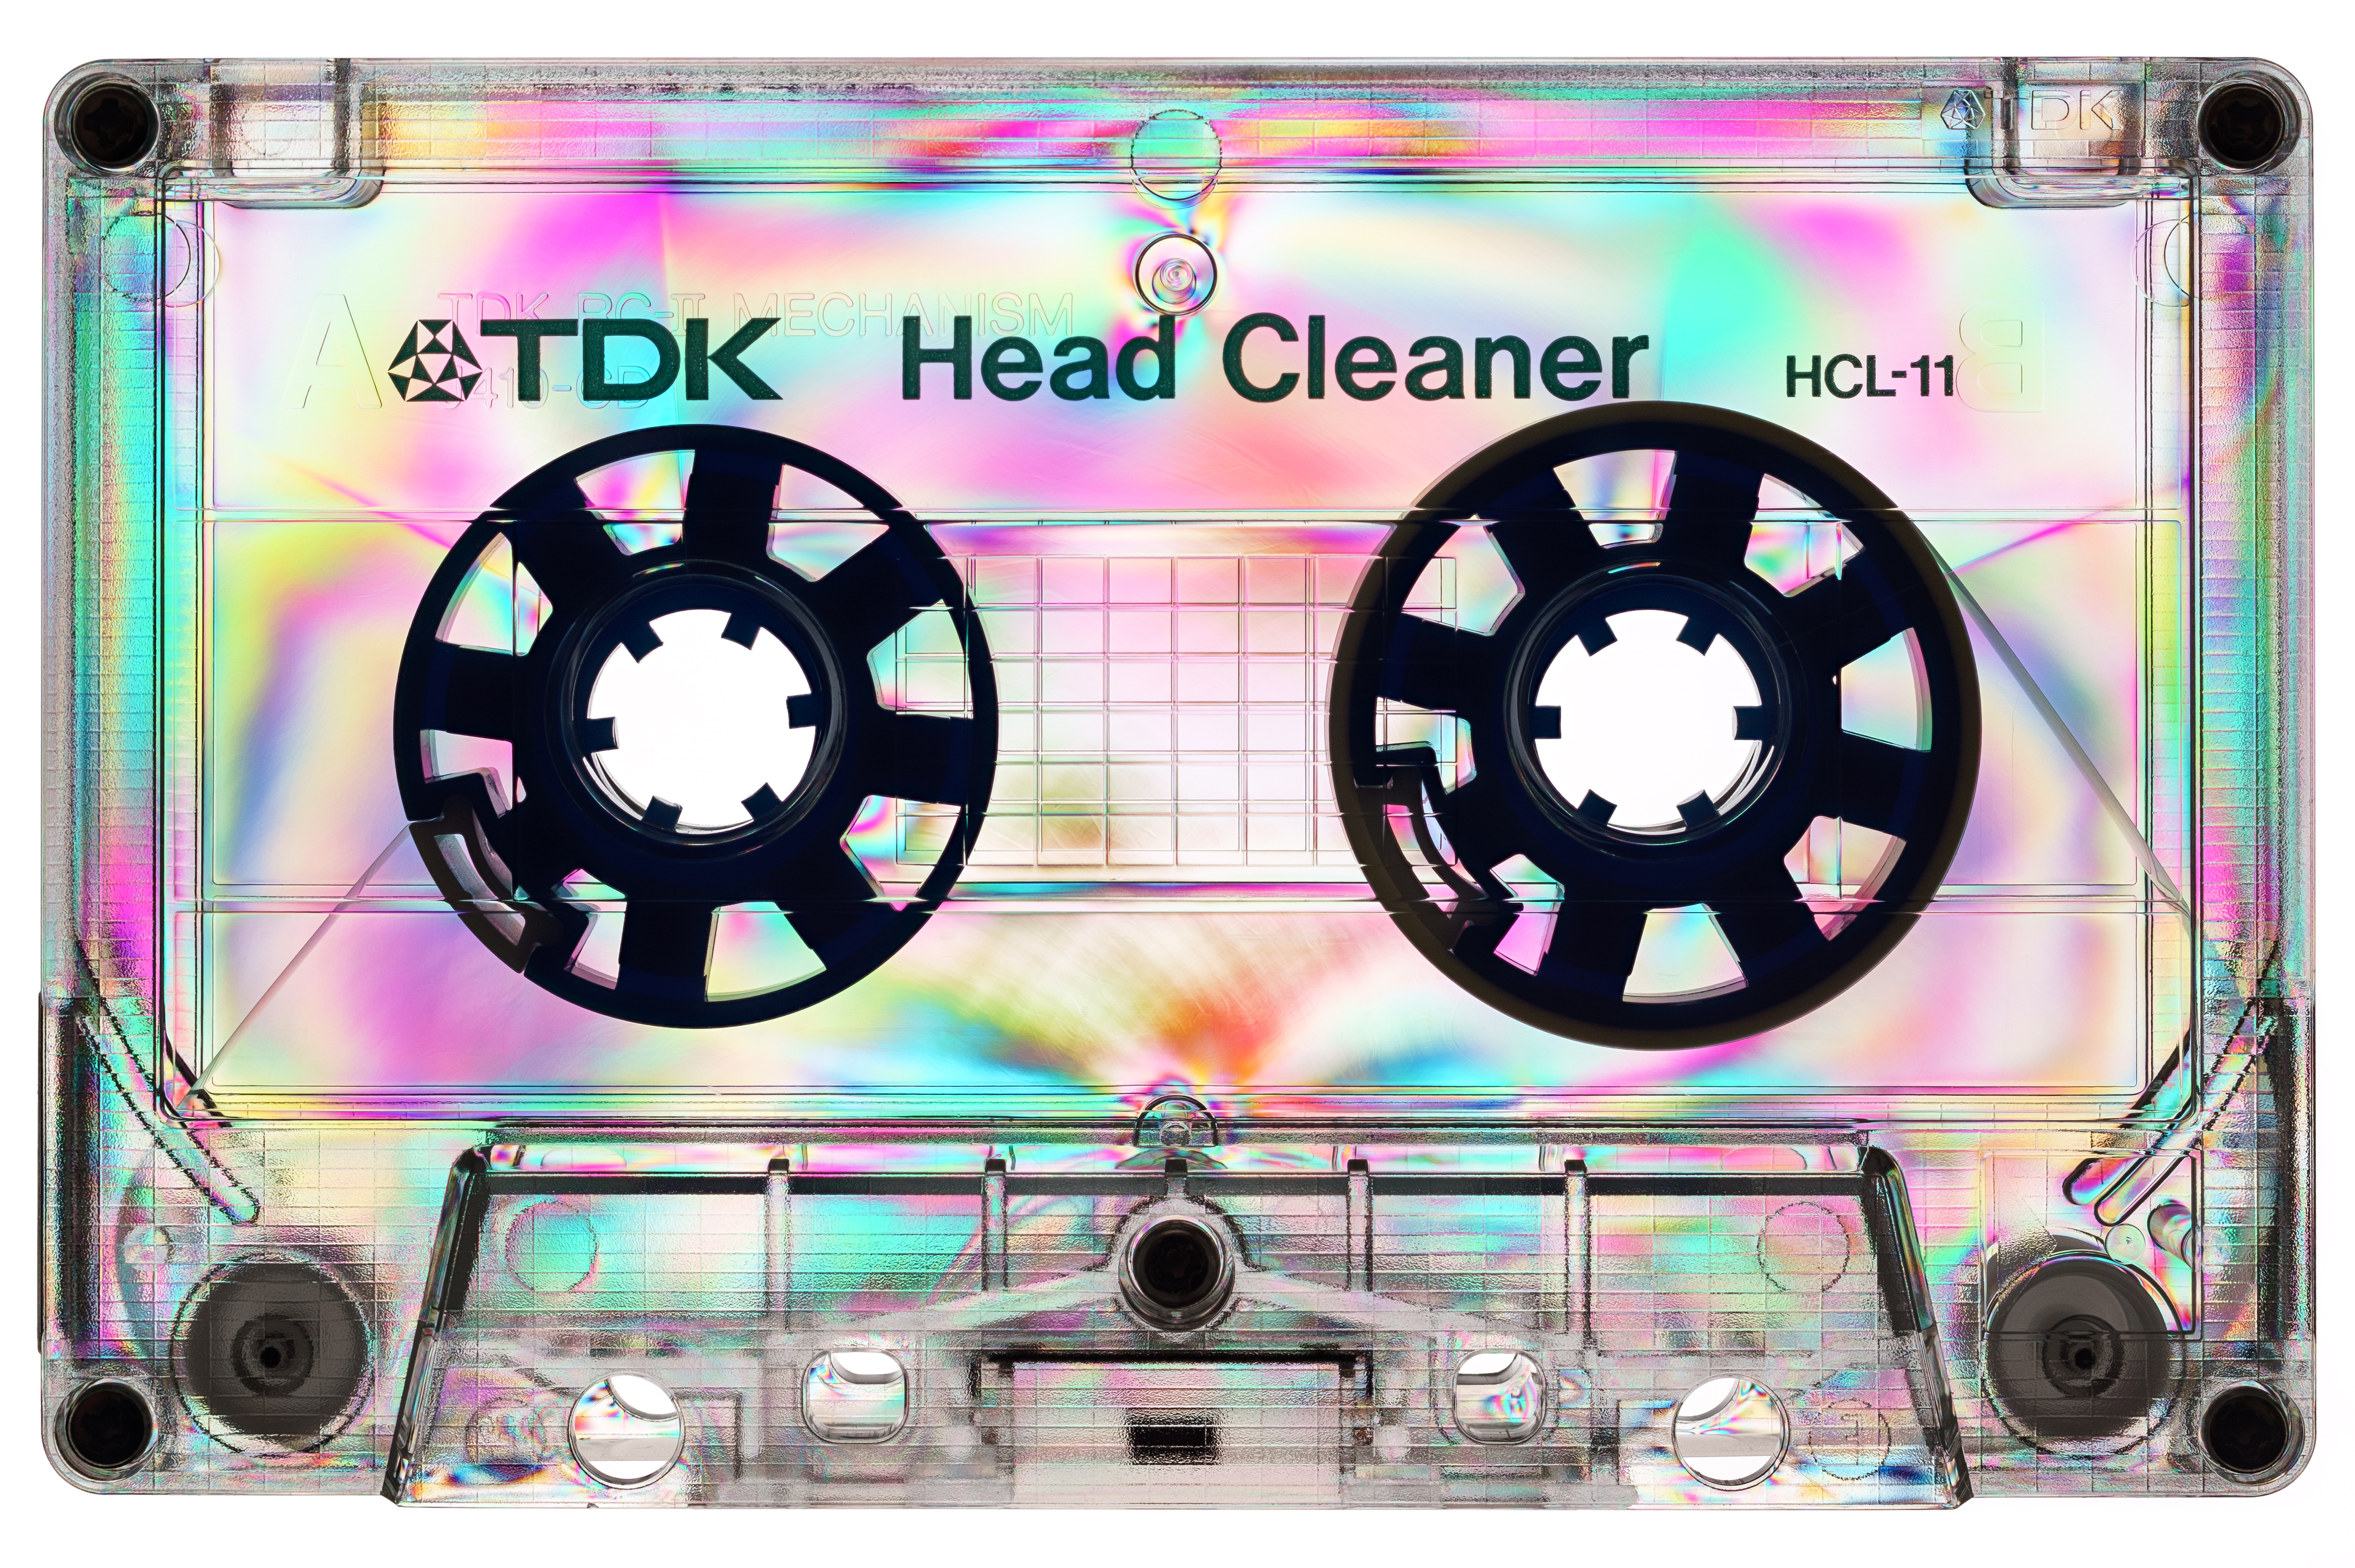 Image description: A clear plastic cassette tape with TDK Head Cleaner written on it. Polarization effects have created ripples of rainbow colors throughout the cassette, especially fuchsia and aqua.